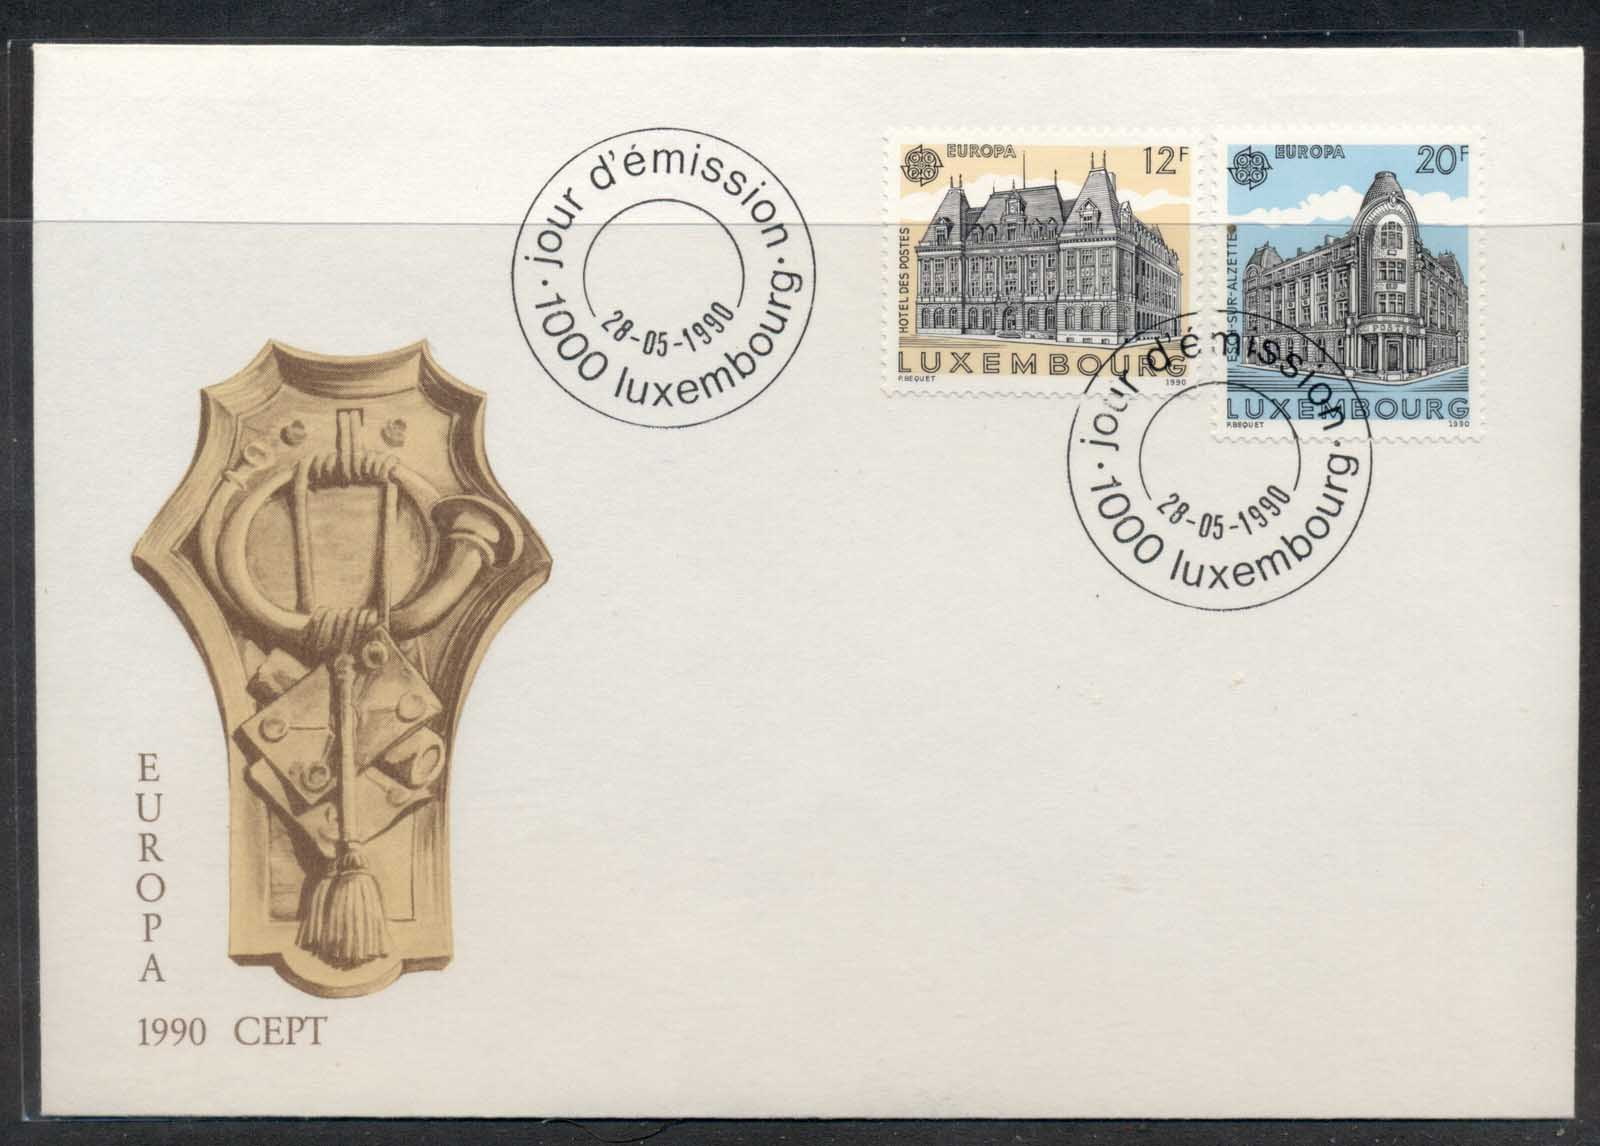 Luxembourg 1990 Europa Post Offices FDC